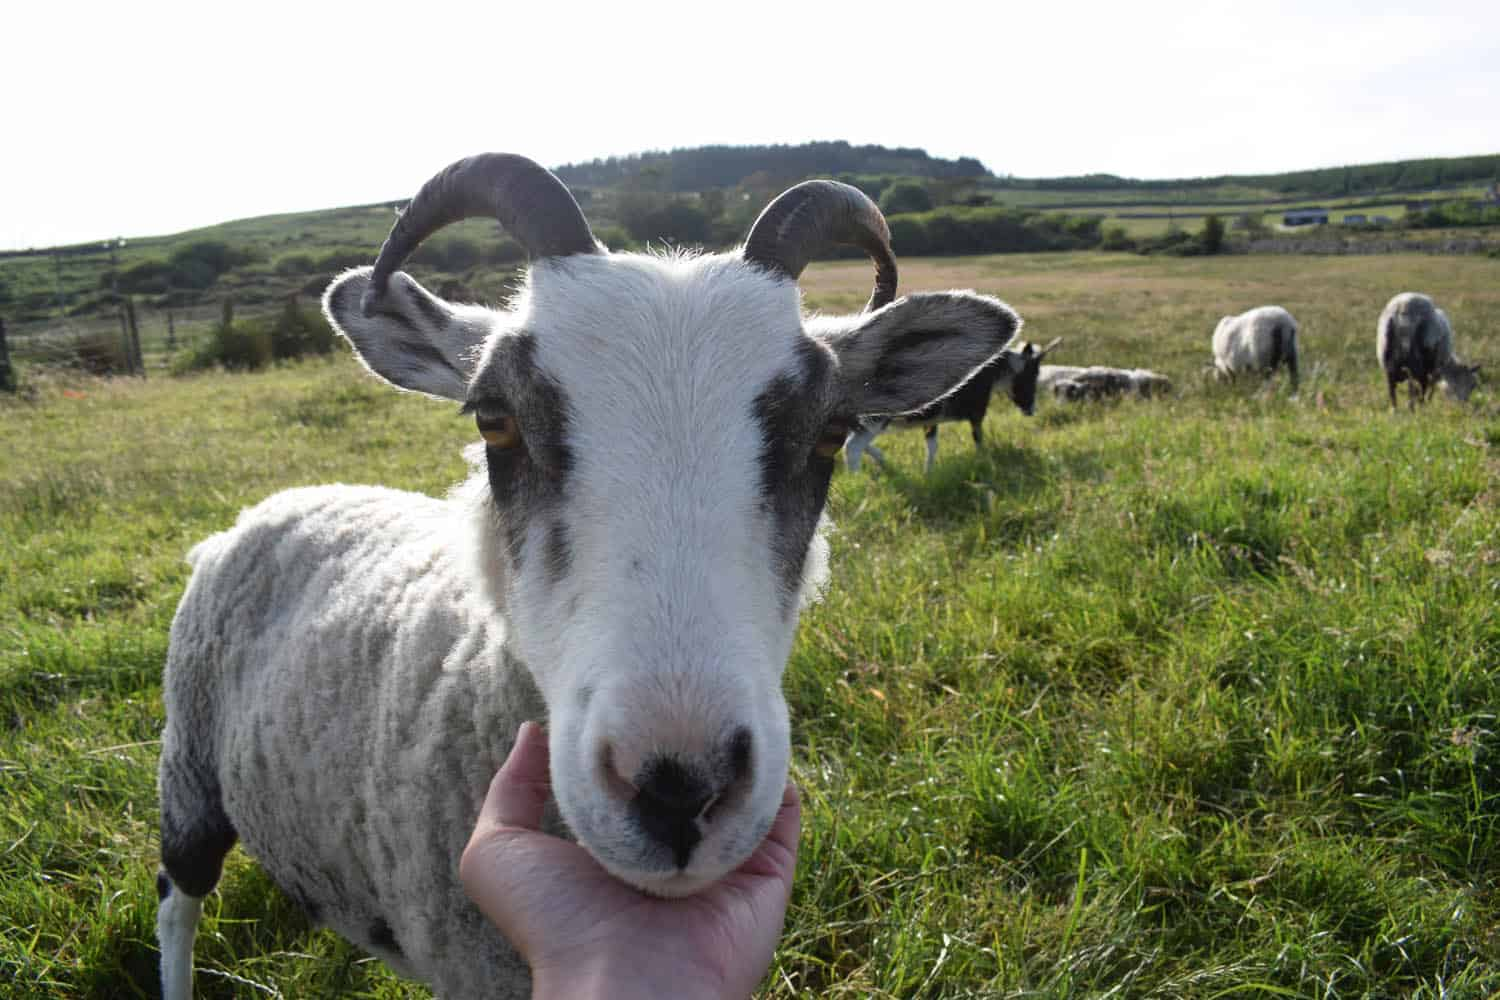 Rhubarb pet sheep badgerface spotted sheep primitive shetland soay crossbreed